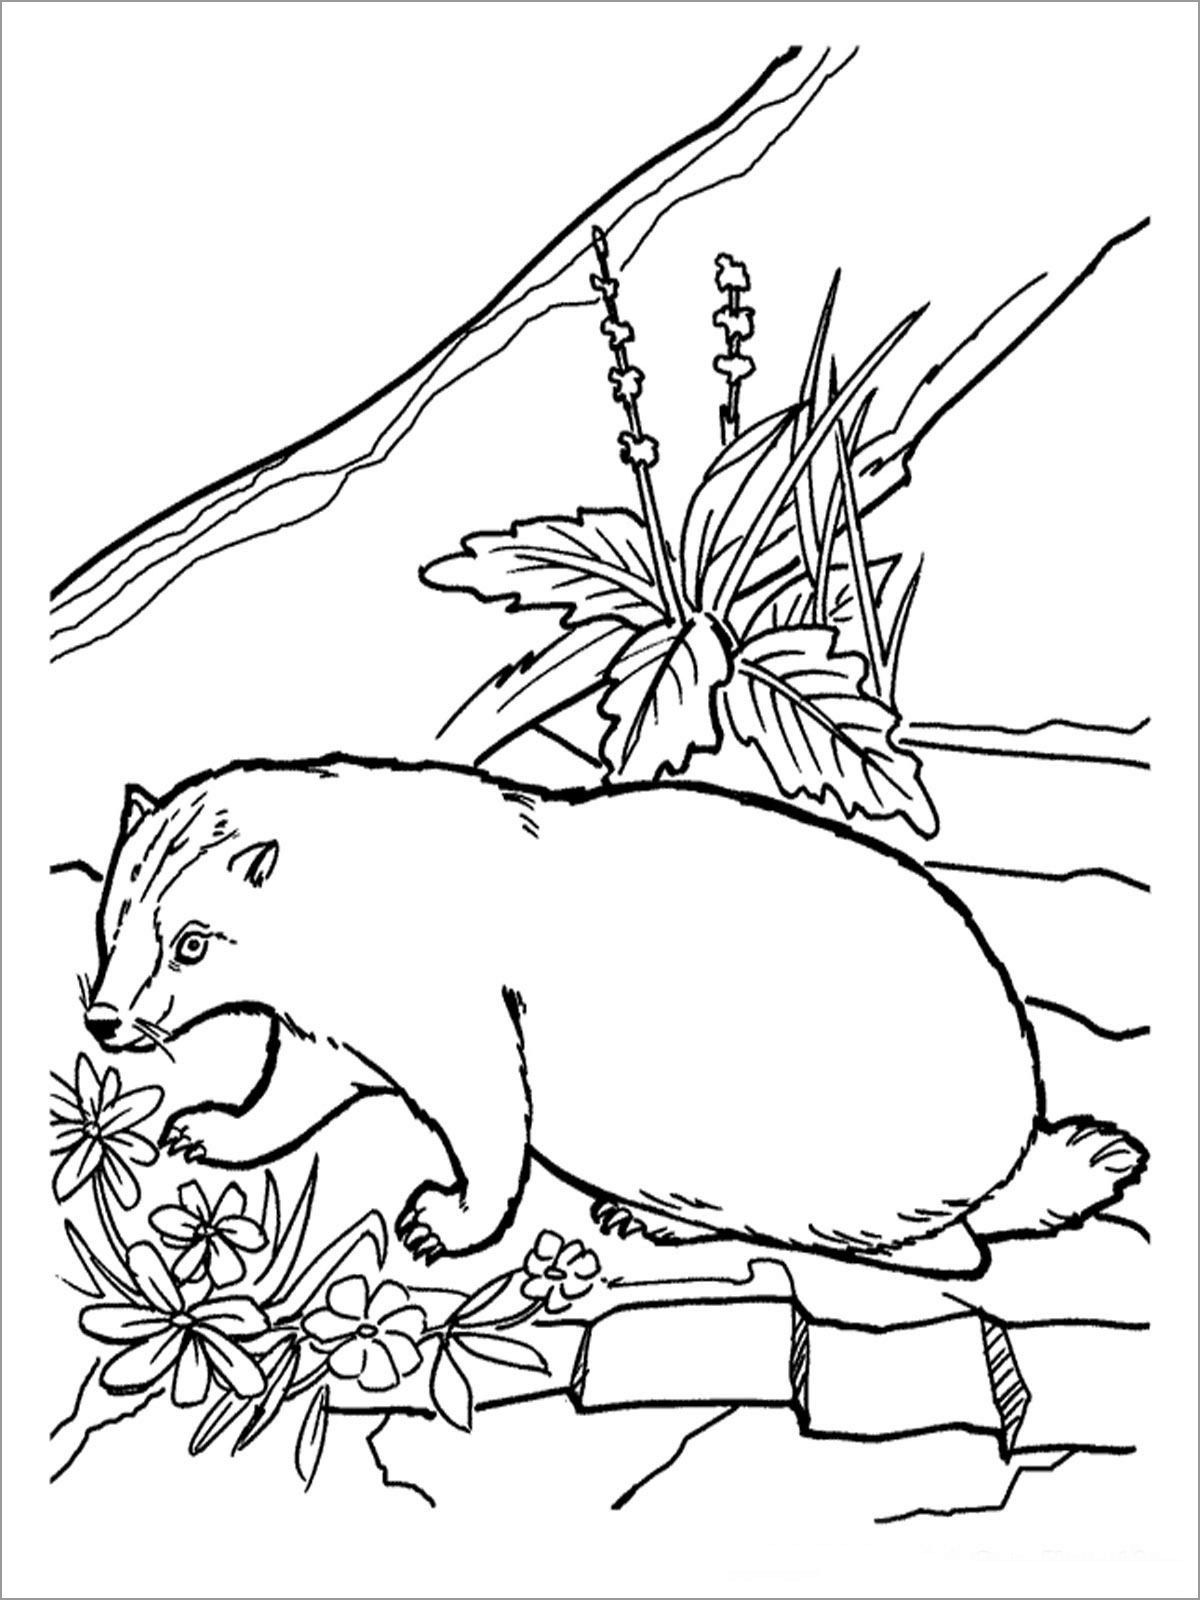 Badger Coloring Pages Best Coloring Pages For Kids In 2021 Coloring Pages Animal Coloring Pages Sports Coloring Pages [ jpg ]